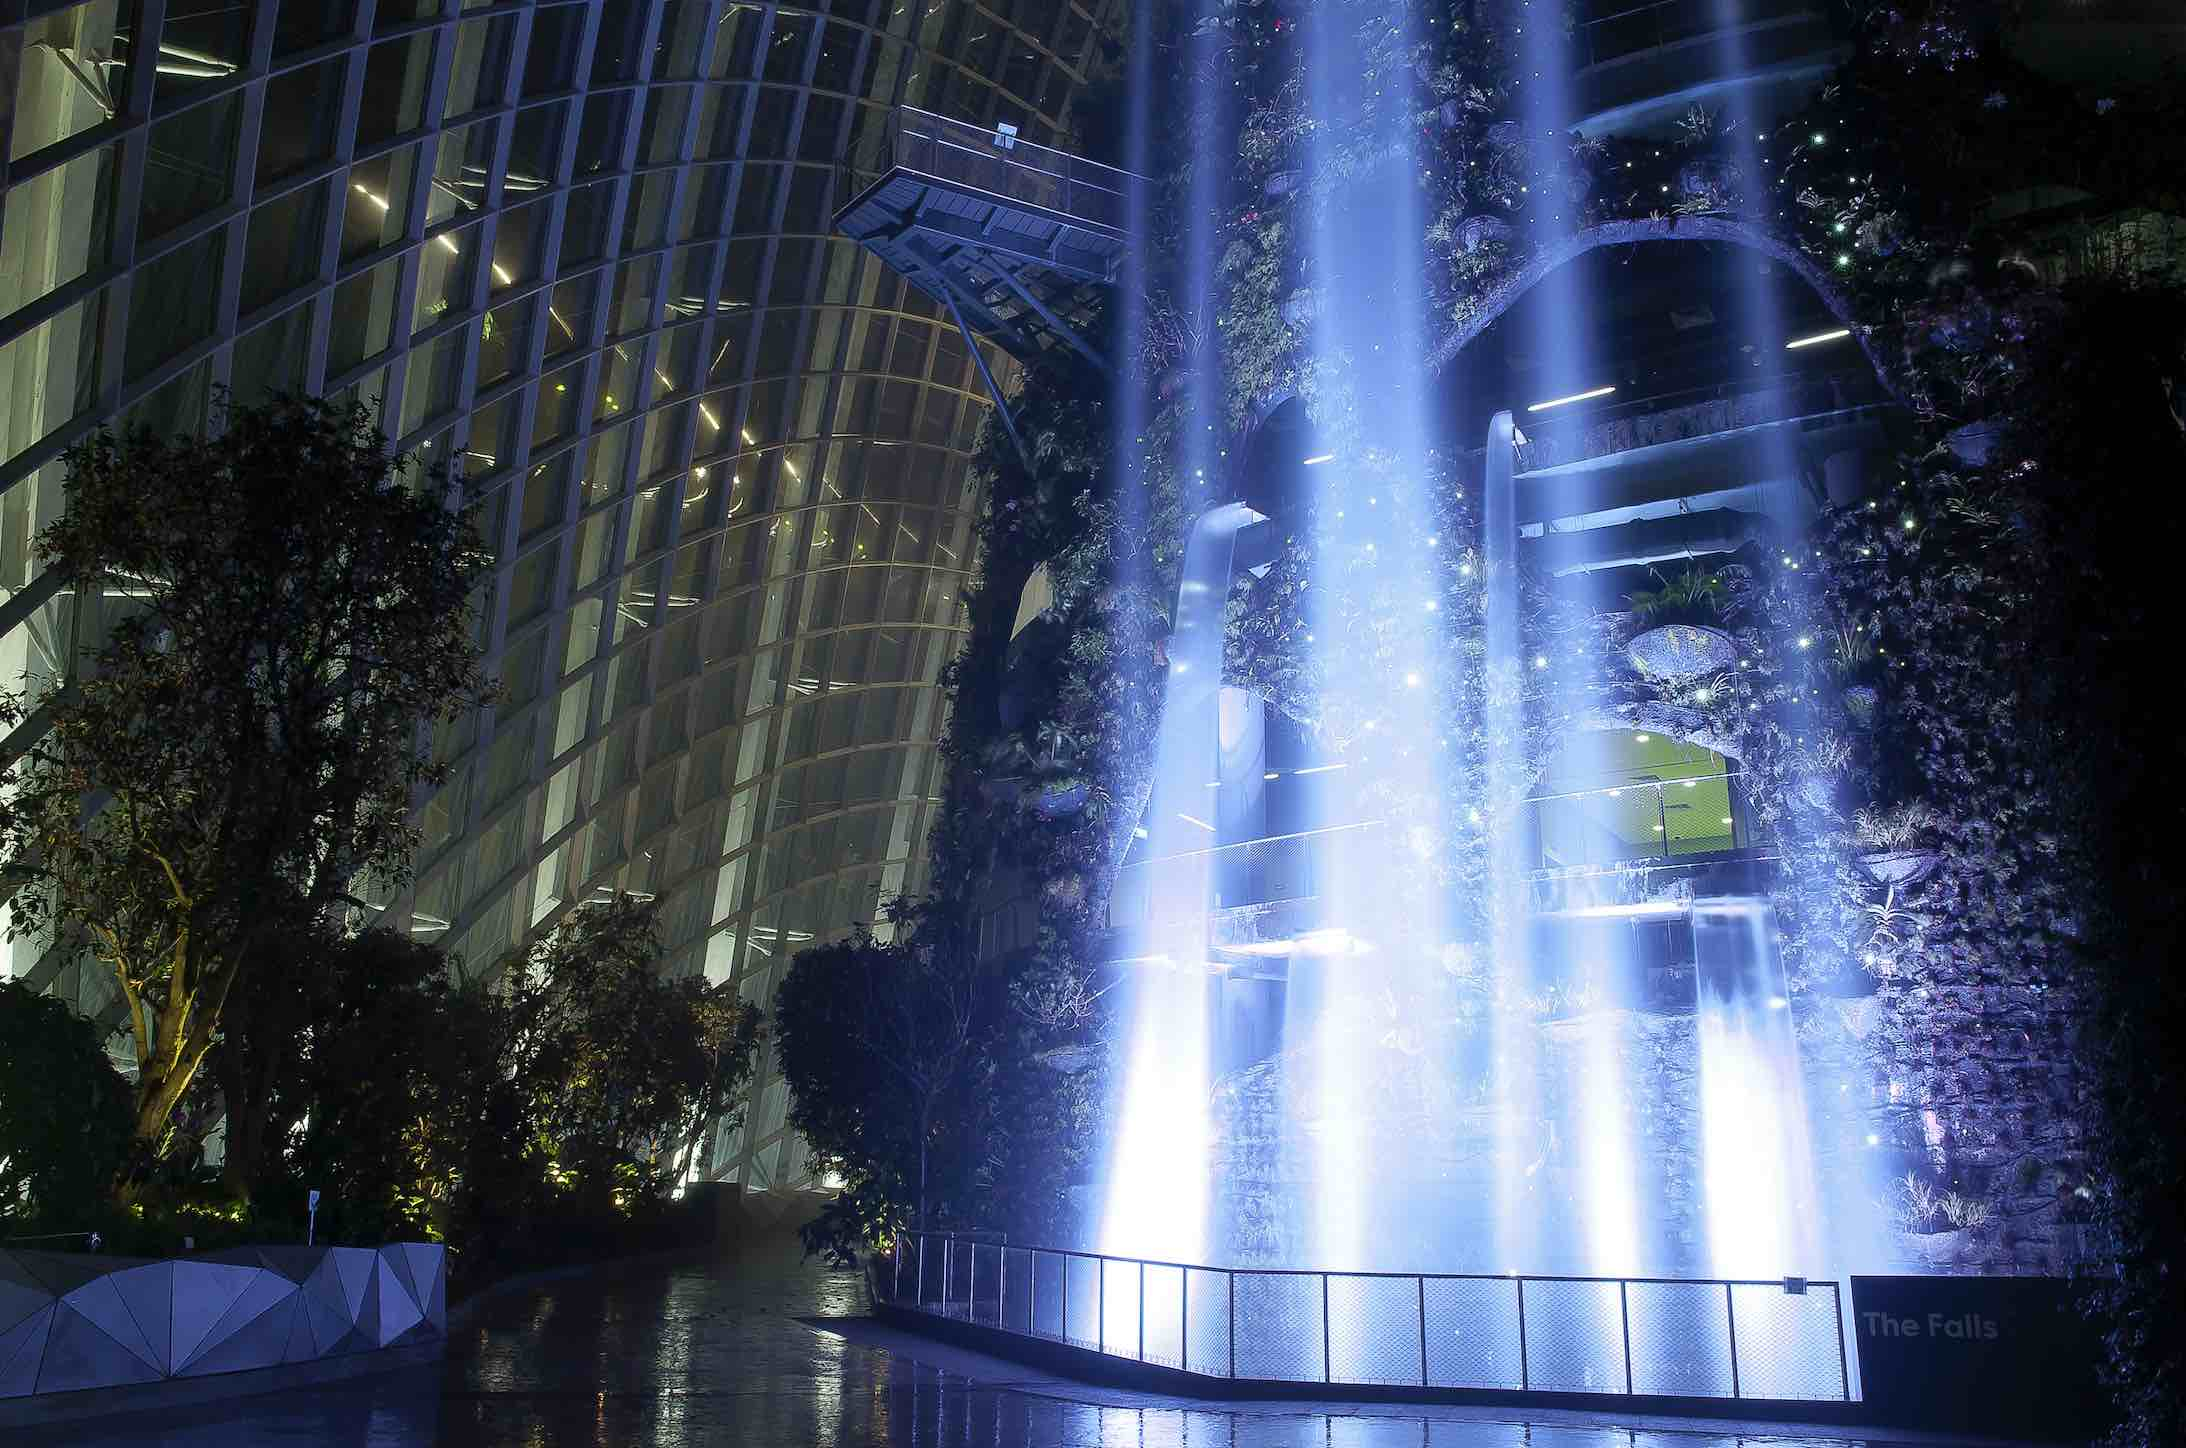 Gardens By The Bay Waterfall.jpg